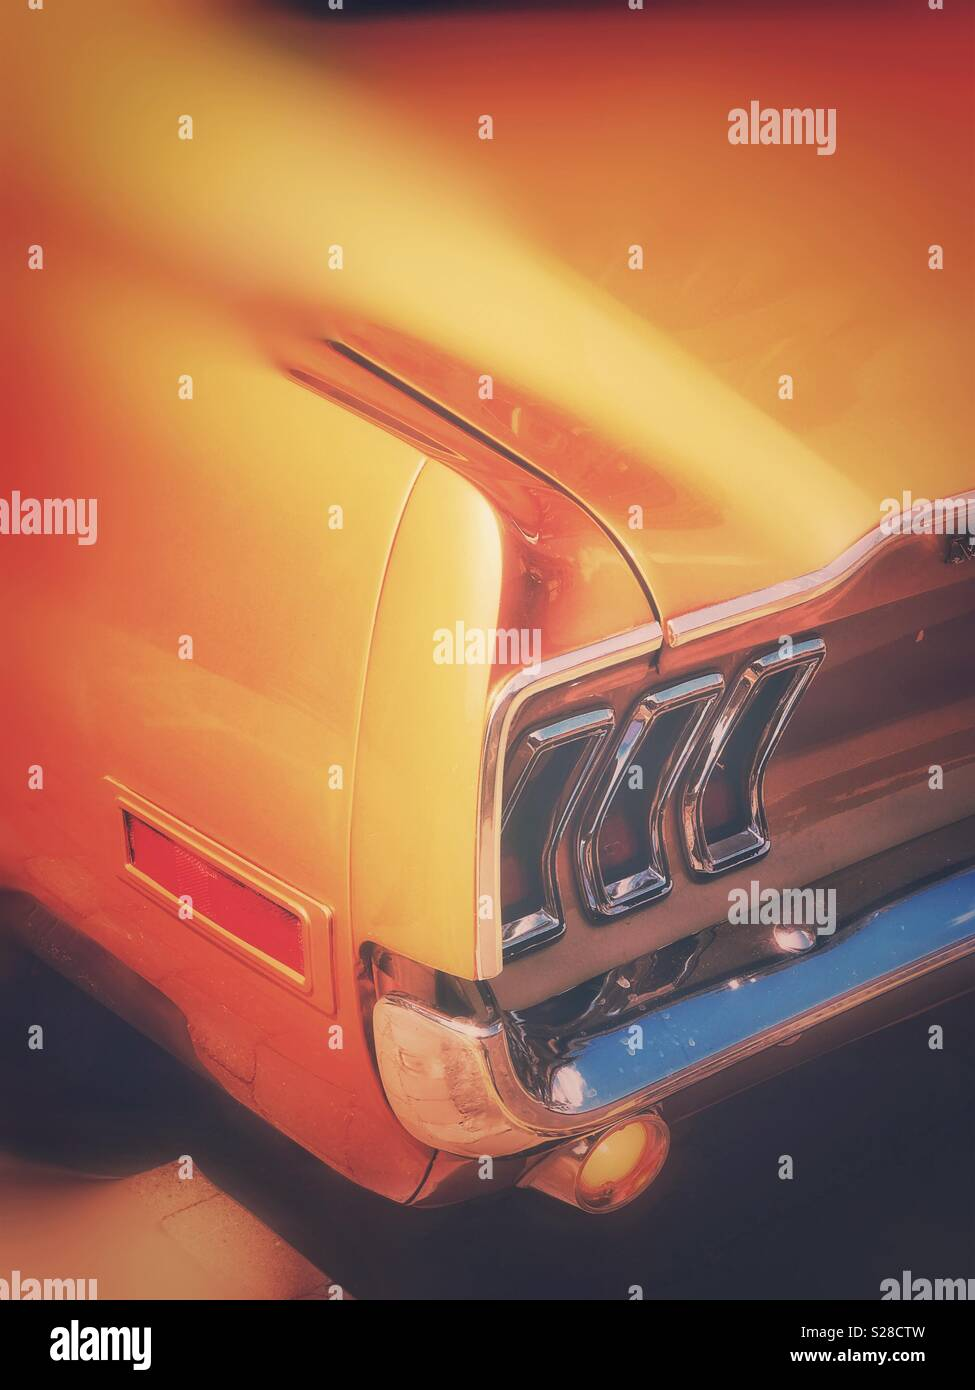 The rear of a Ford Mustang car - Stock Image